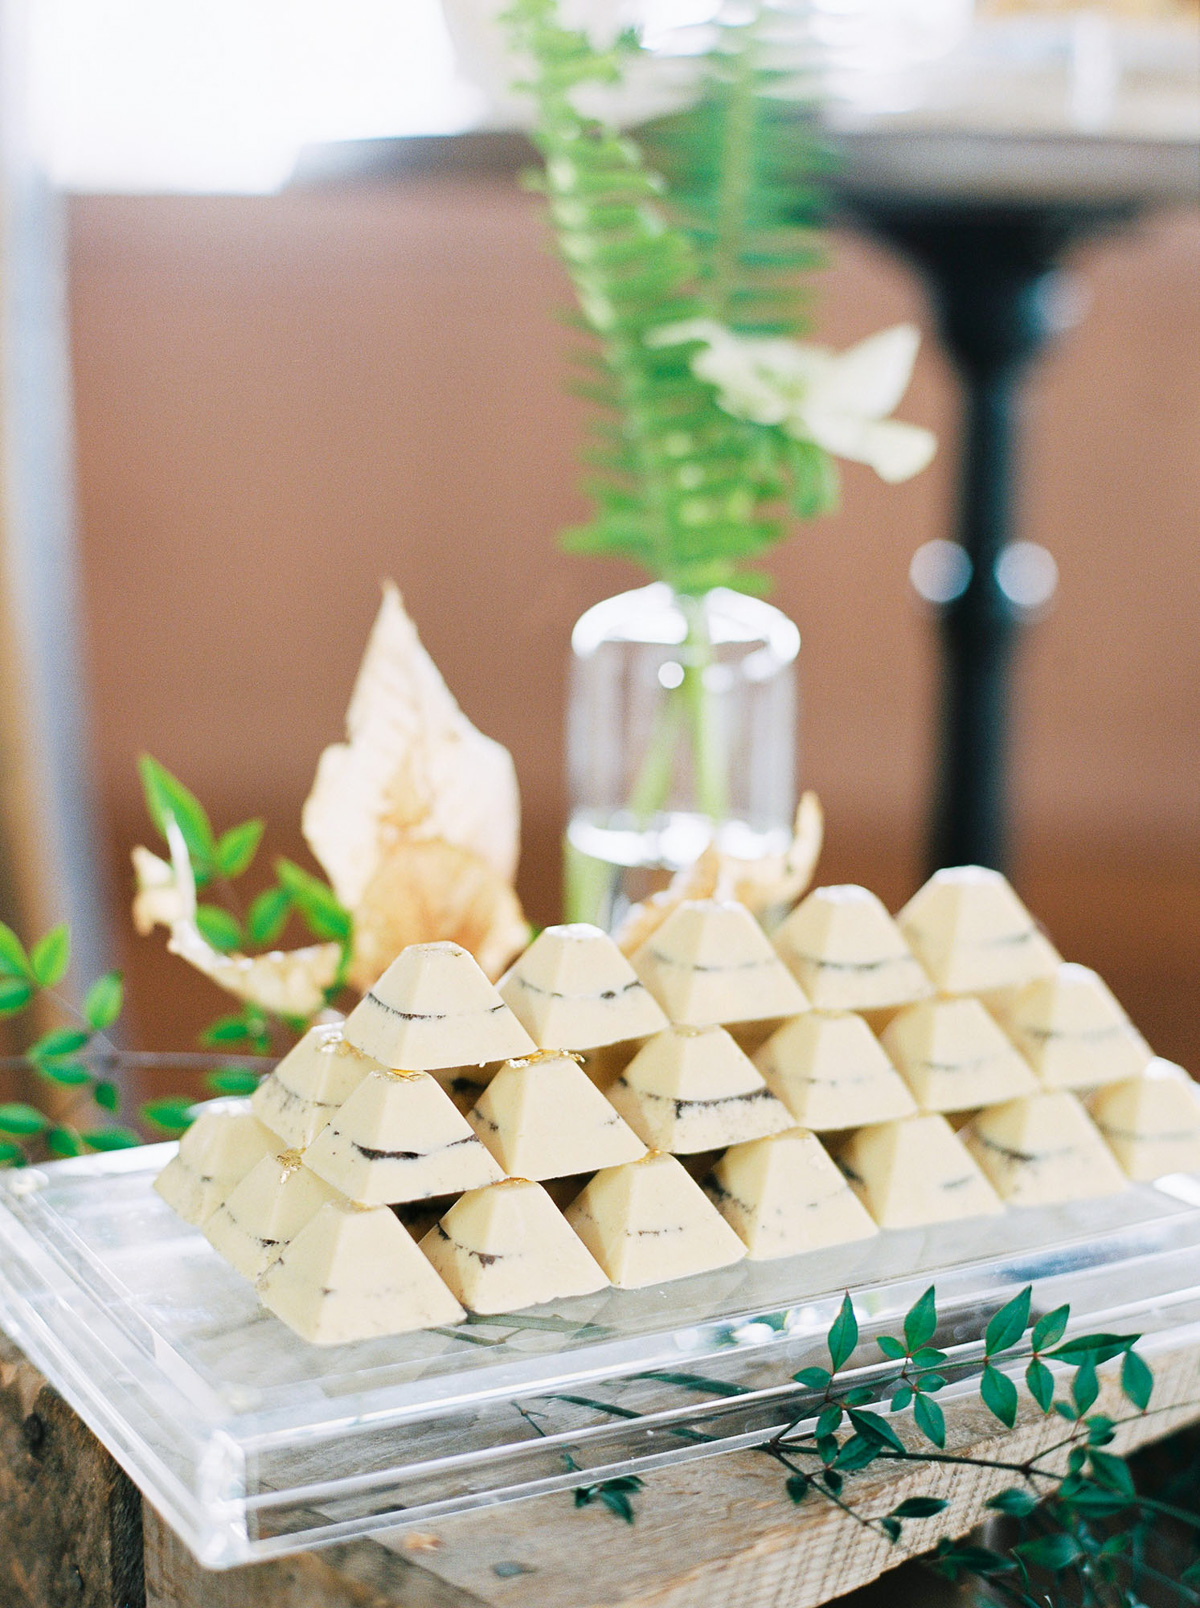 will-reid-photo-vineyard-bride-swish-list-kurtz-orchards-market-niagara-on-the-lake-wedding-editorial-34.jpg